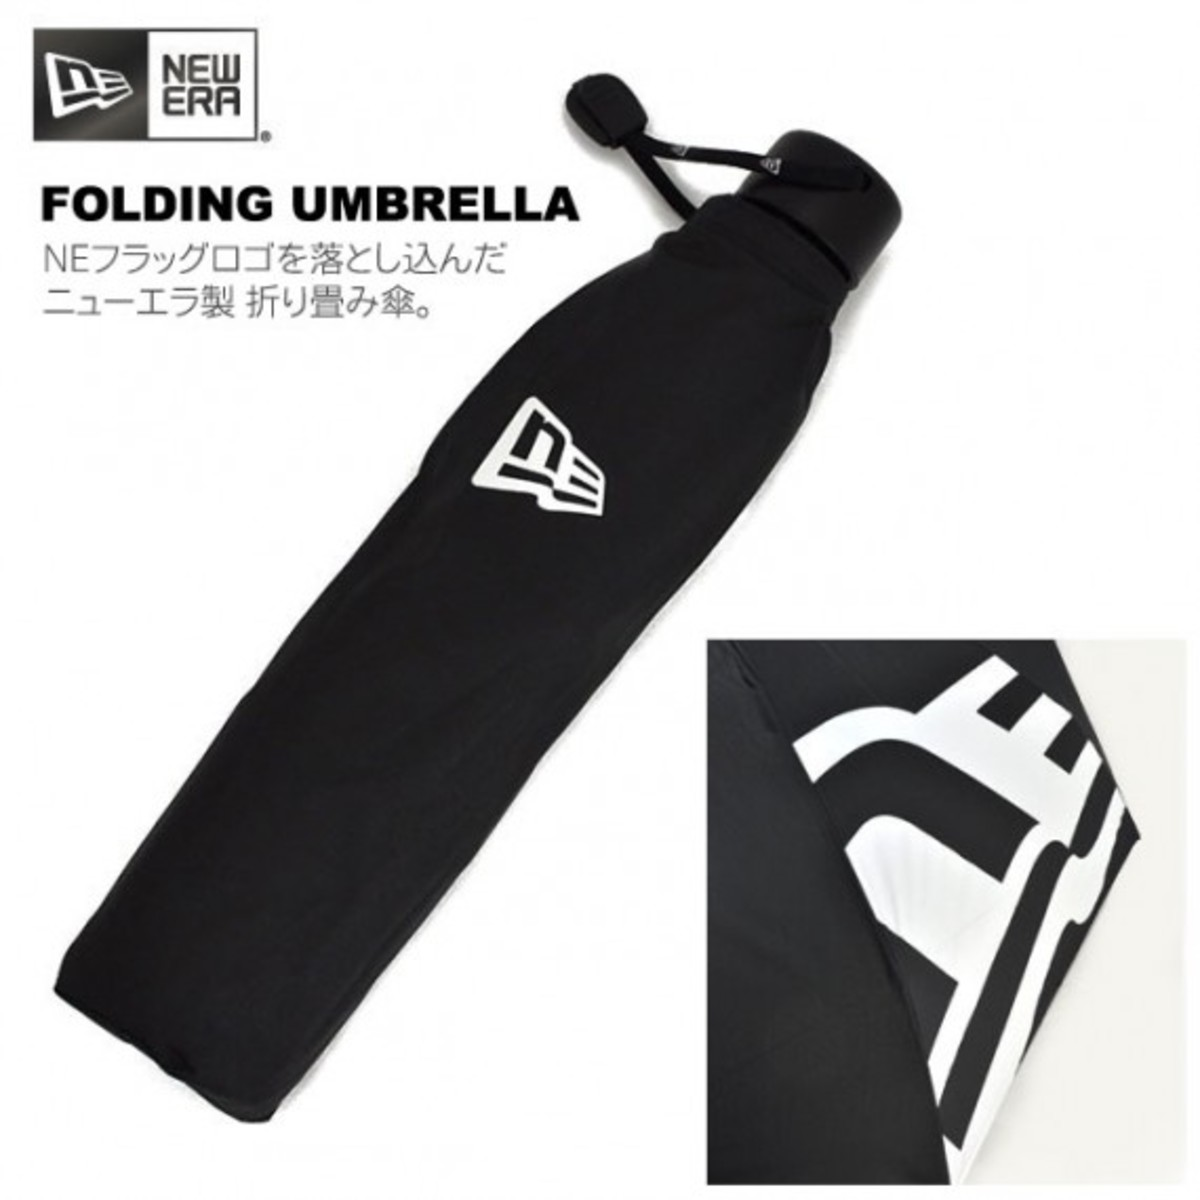 new-era-folding-umbrella-01